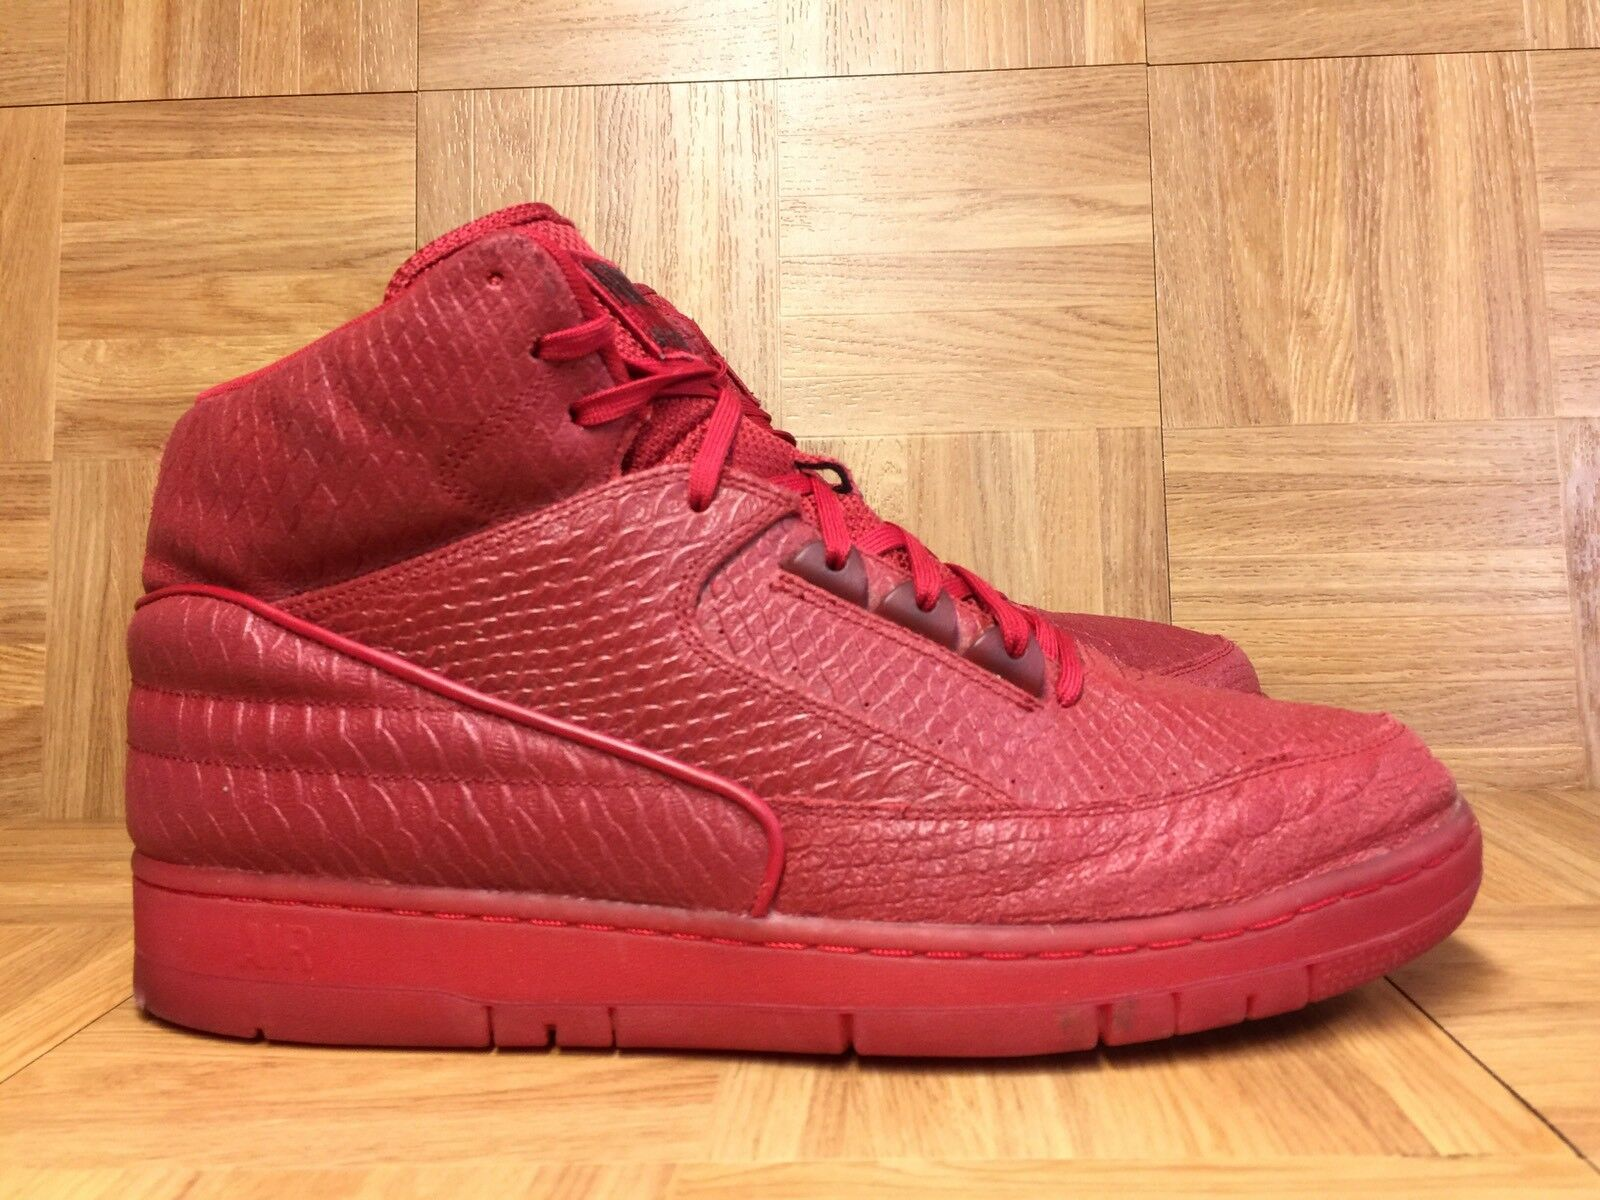 RARE Nike Air Python PRM Red October Gym Red Black Sz 13 705066-600 Snakeskin